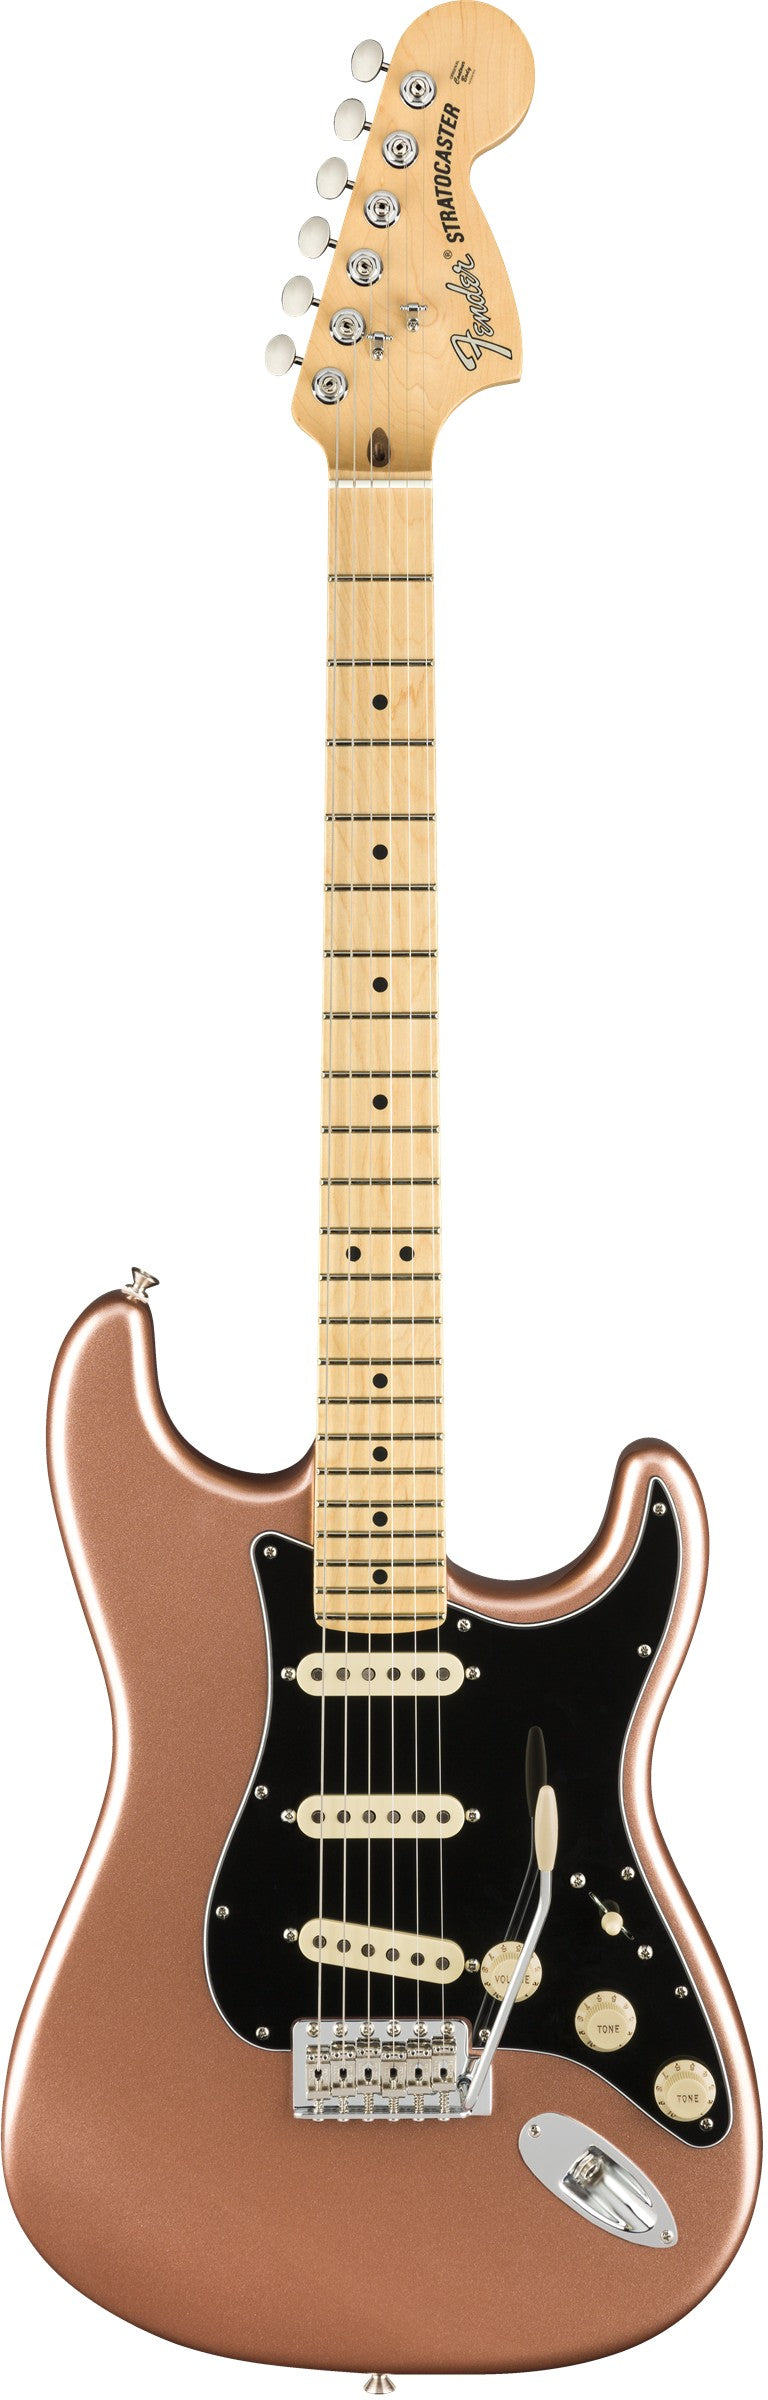 Fender American Performer Stratocaster Electric Guitar, Maple Fingerboard - Penny